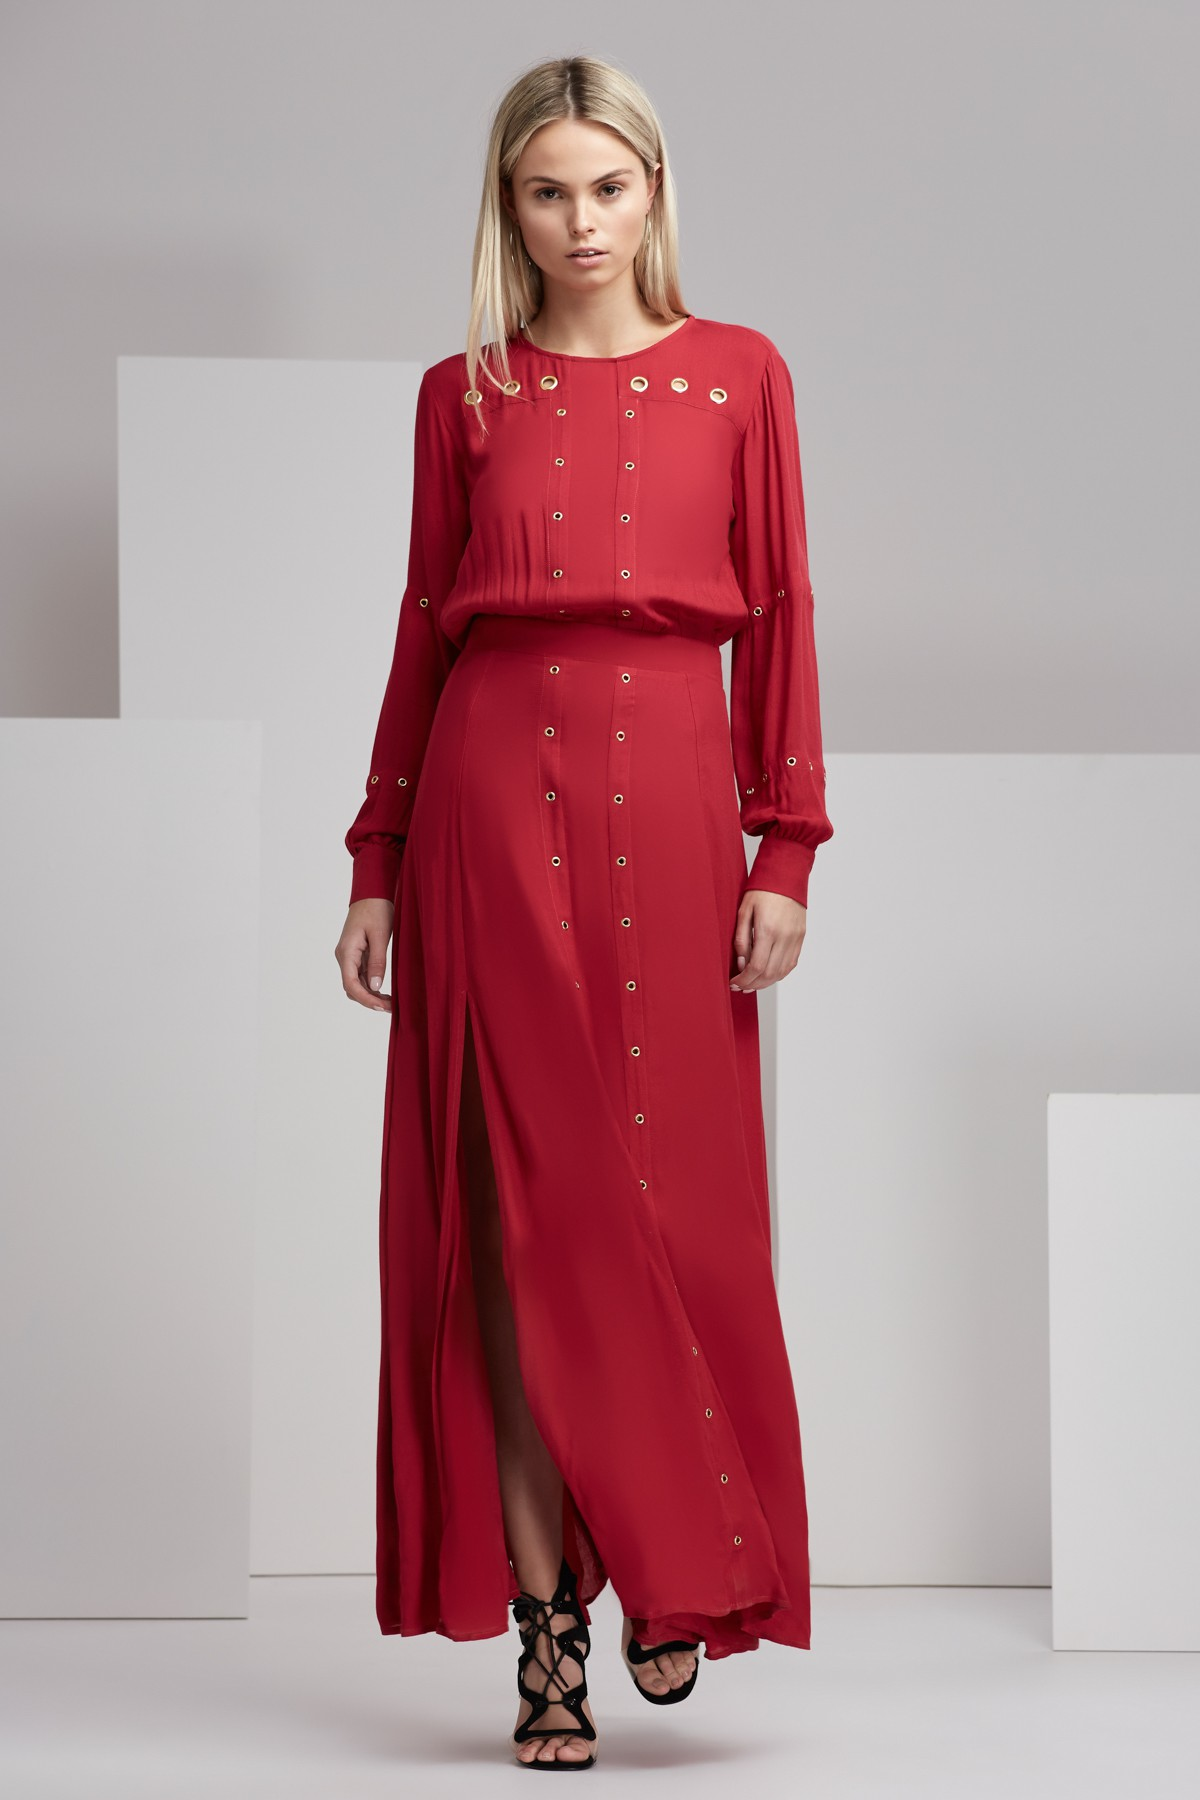 fk_maddox_ls_dress_crimson_sh_53849.jpg